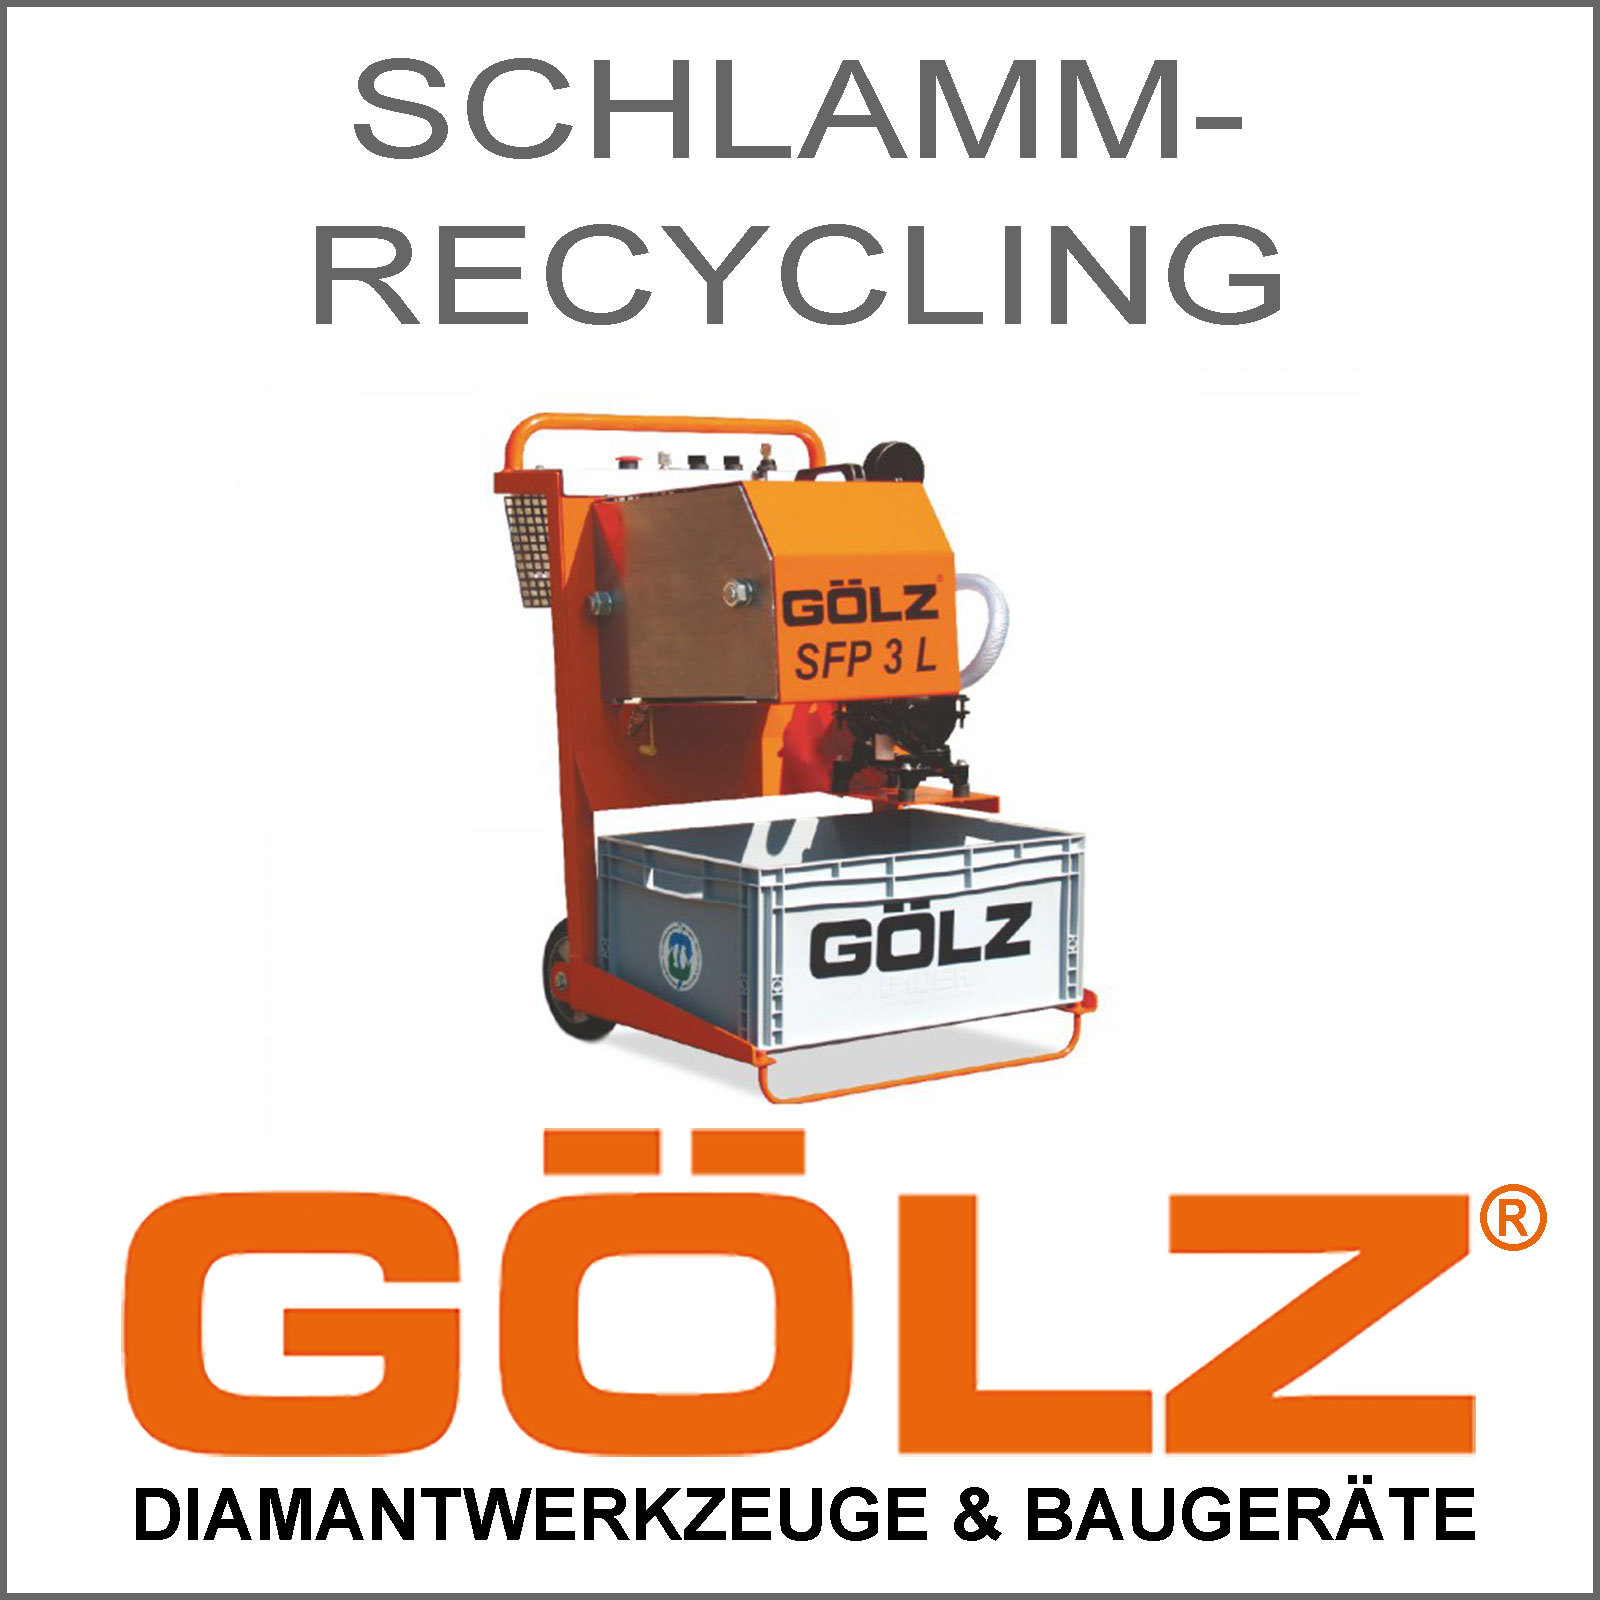 GOeLZ-Schlammrecycling